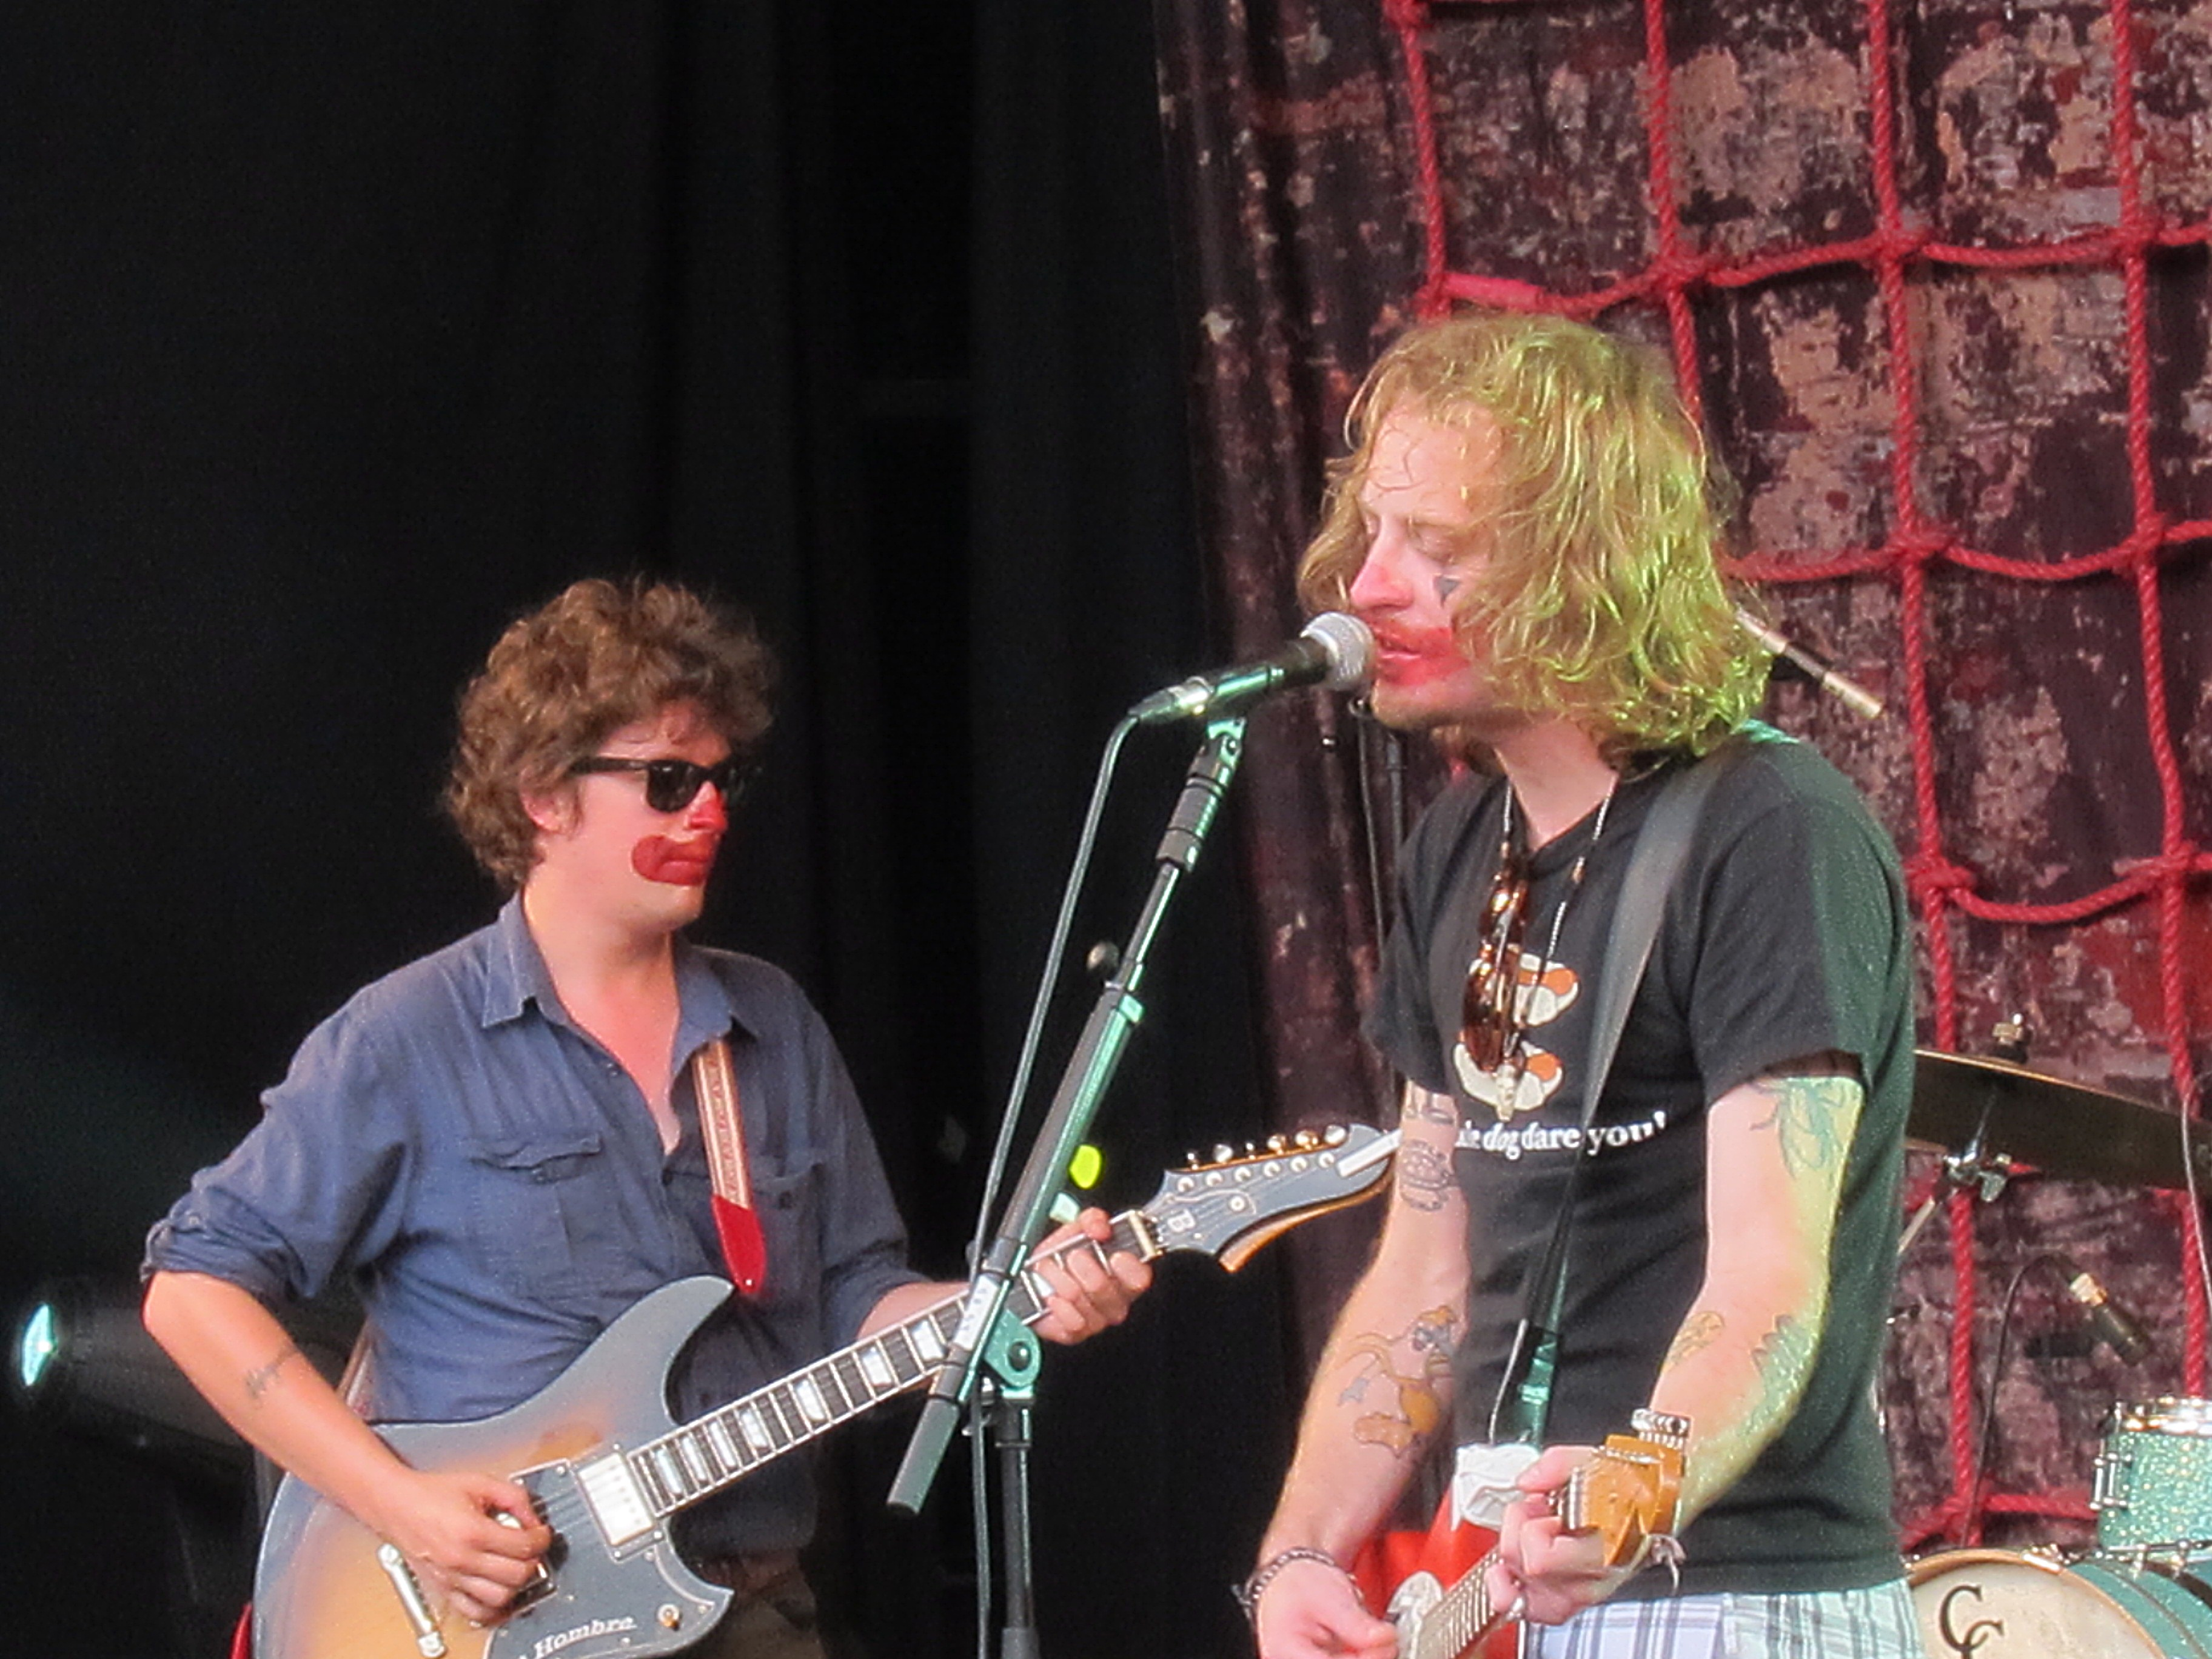 Deer Tick - Dirty Dishes (Chords) - Ultimate-Guitar.Com